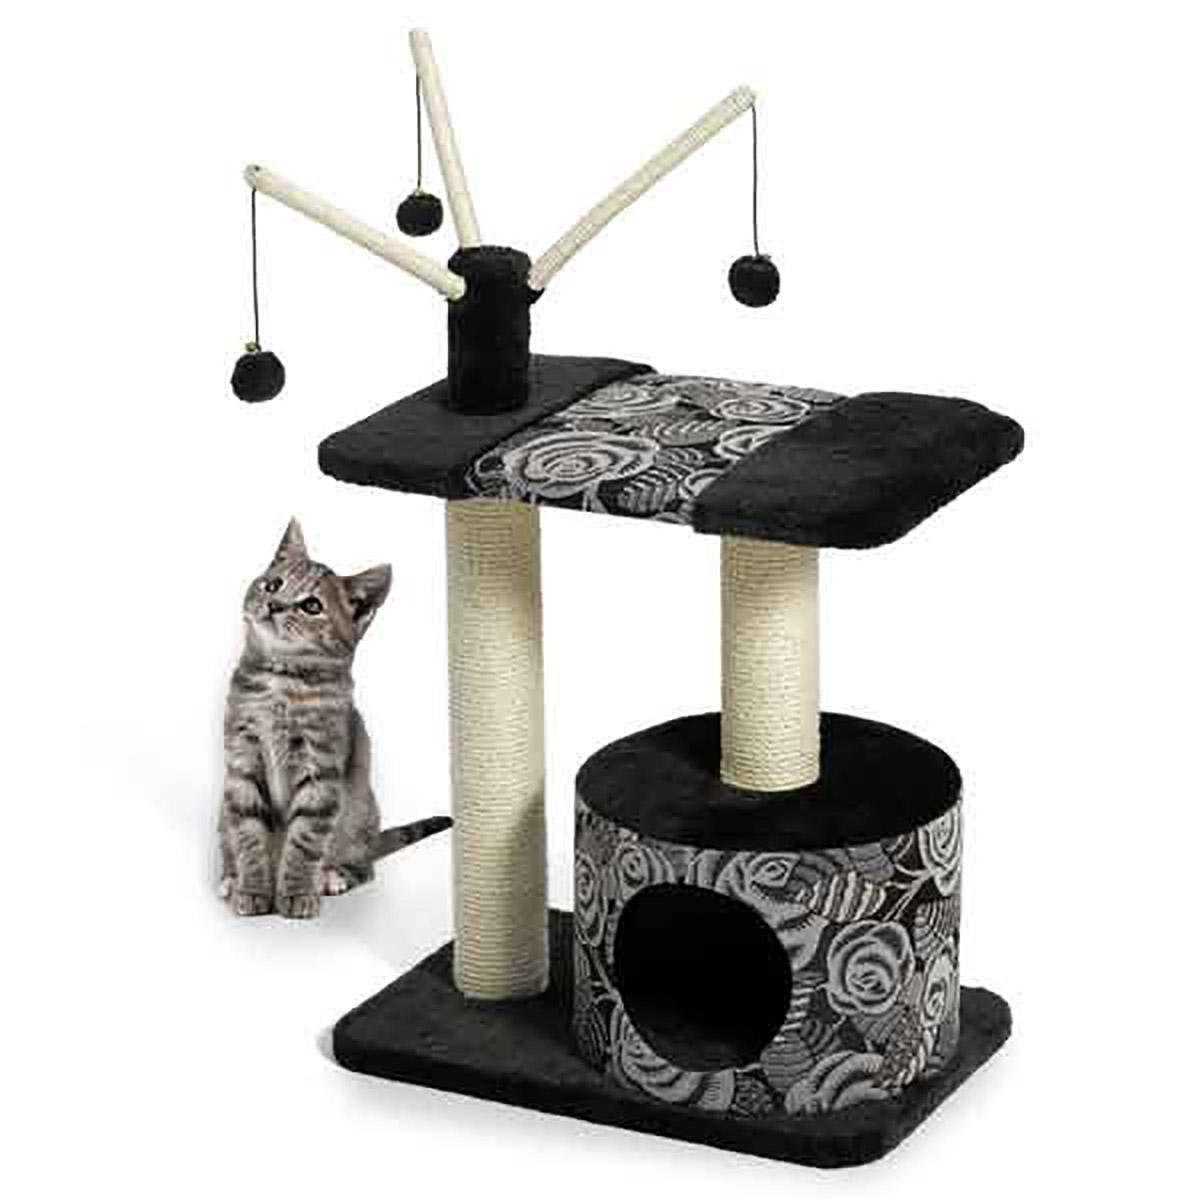 MD Group Cat Furniture Carnival MidWest Feline Sturdy Multi-tier Soft Bench Cat Lounging & Play